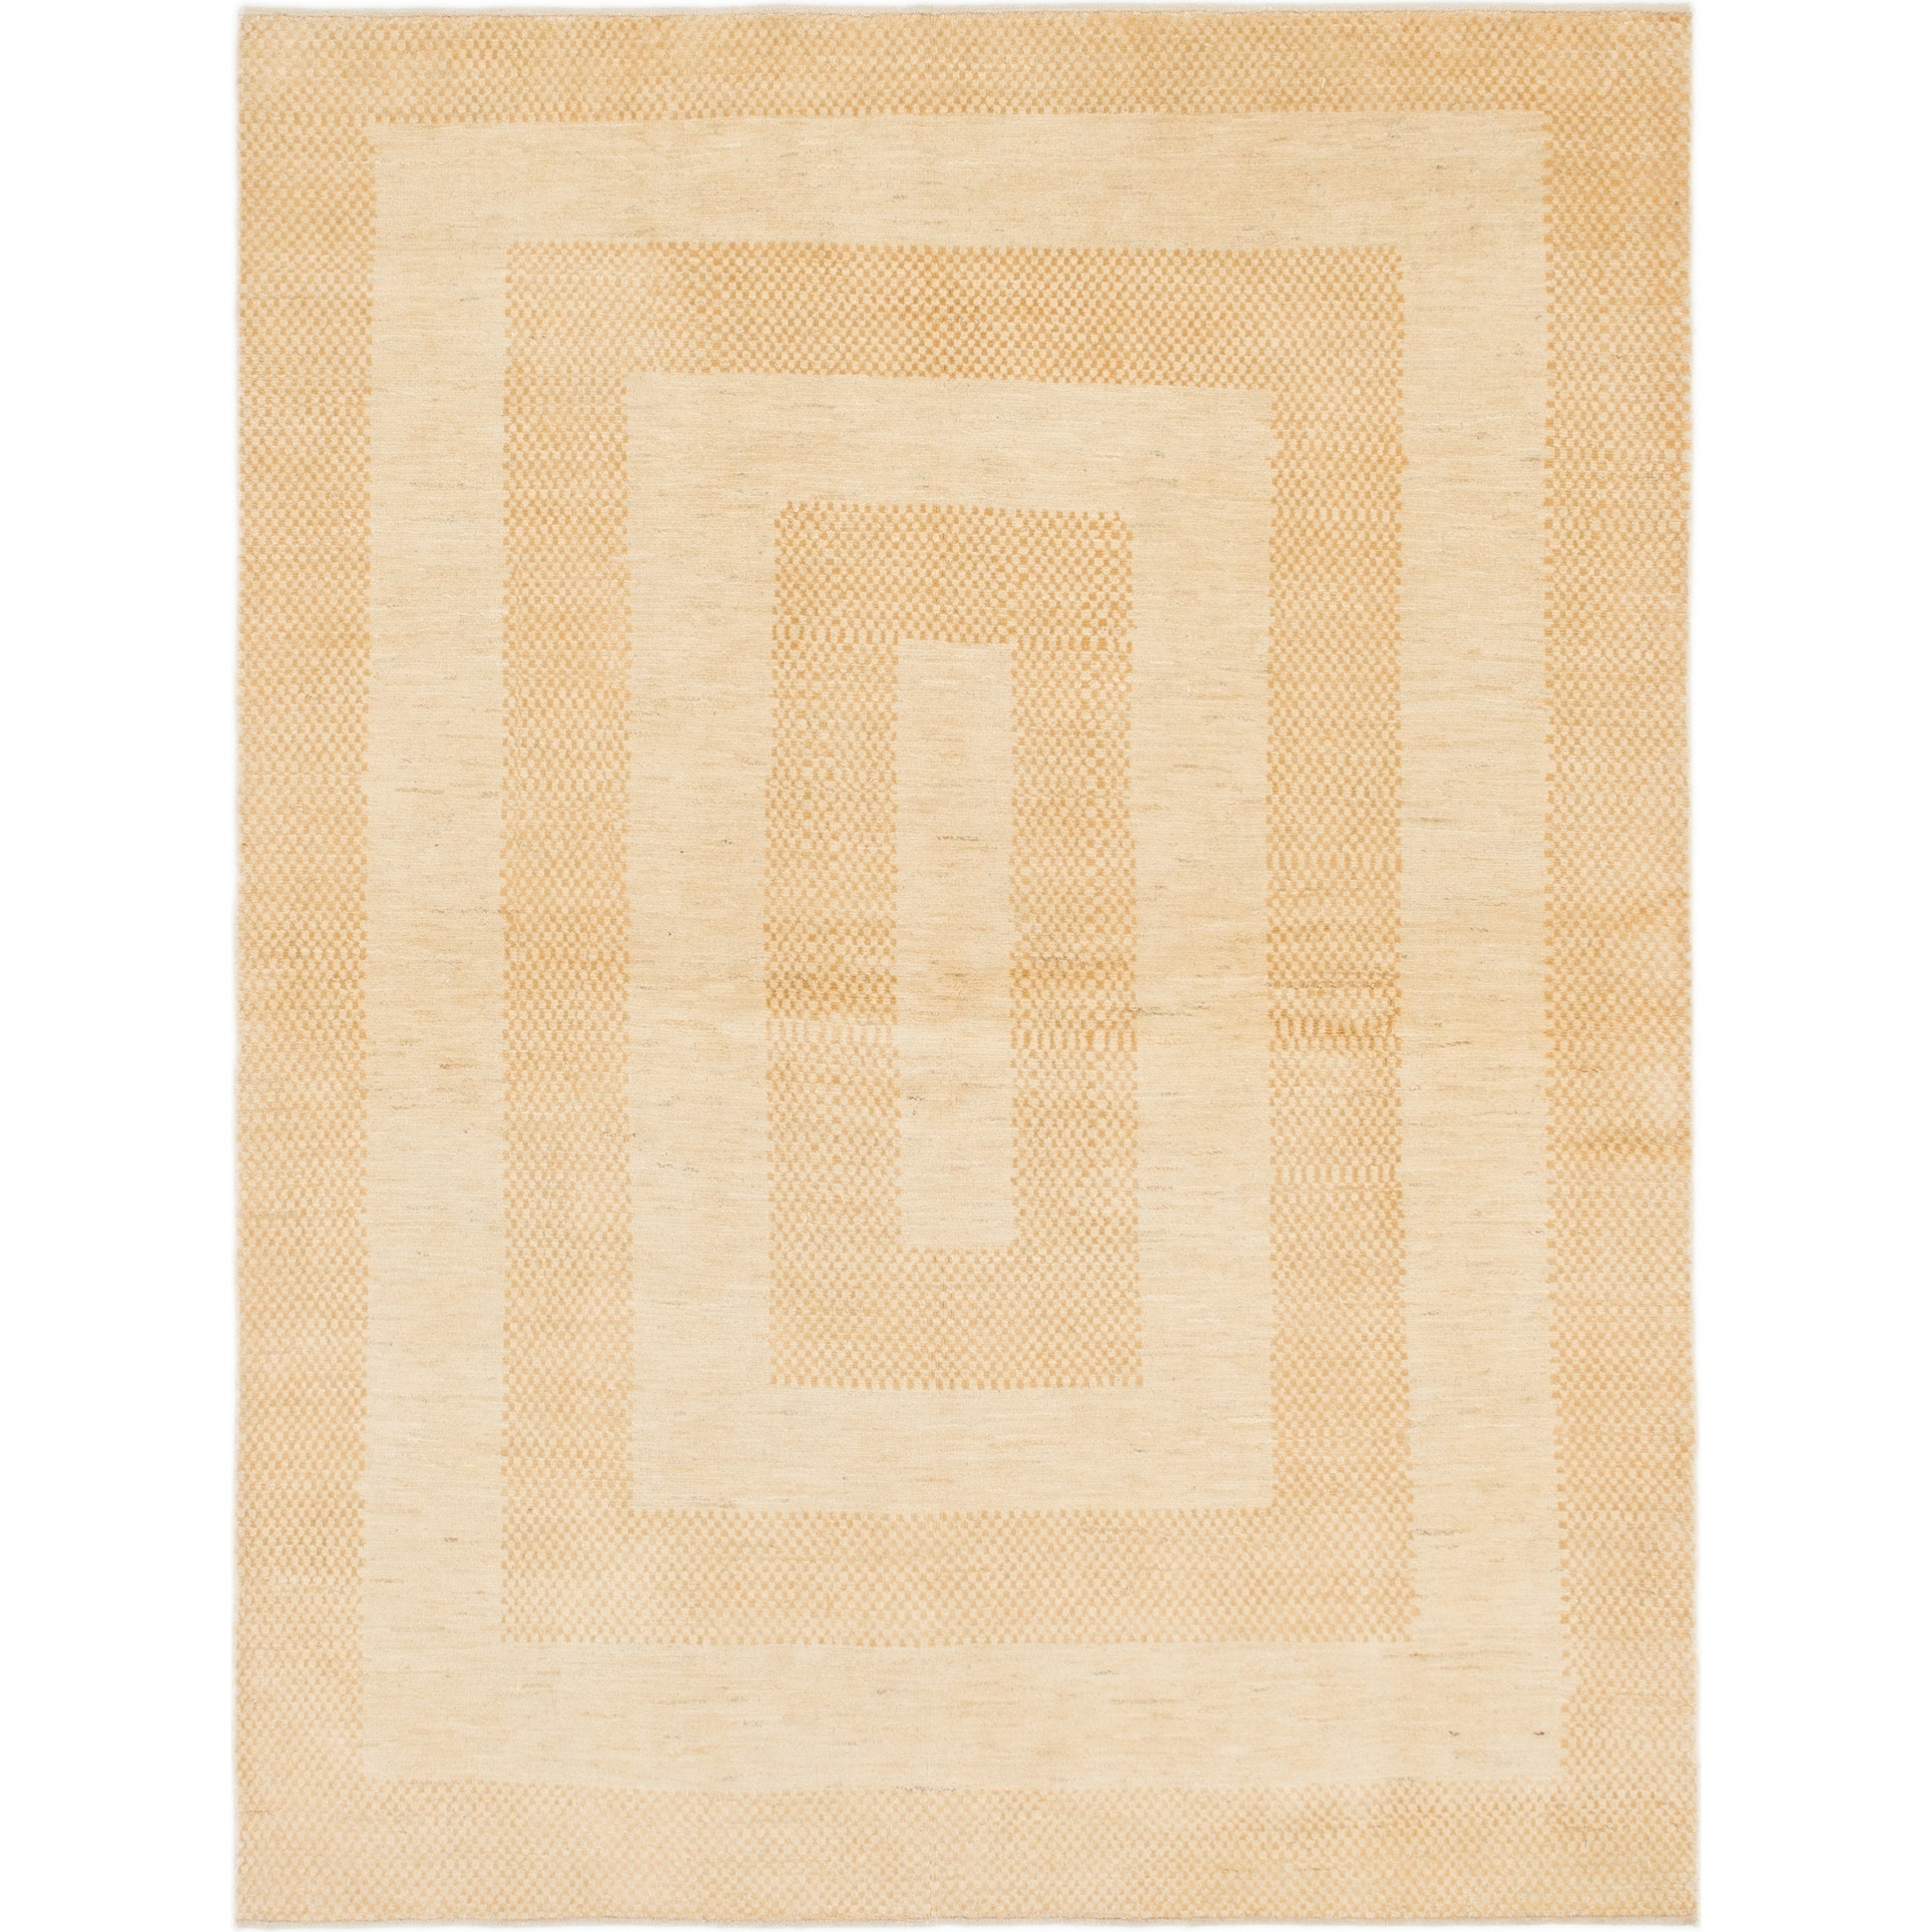 Hand Knotted Kashkuli Gabbeh Wool Area Rug - 5 9 x 7 7 (Gold - 5 9 x 7 7)